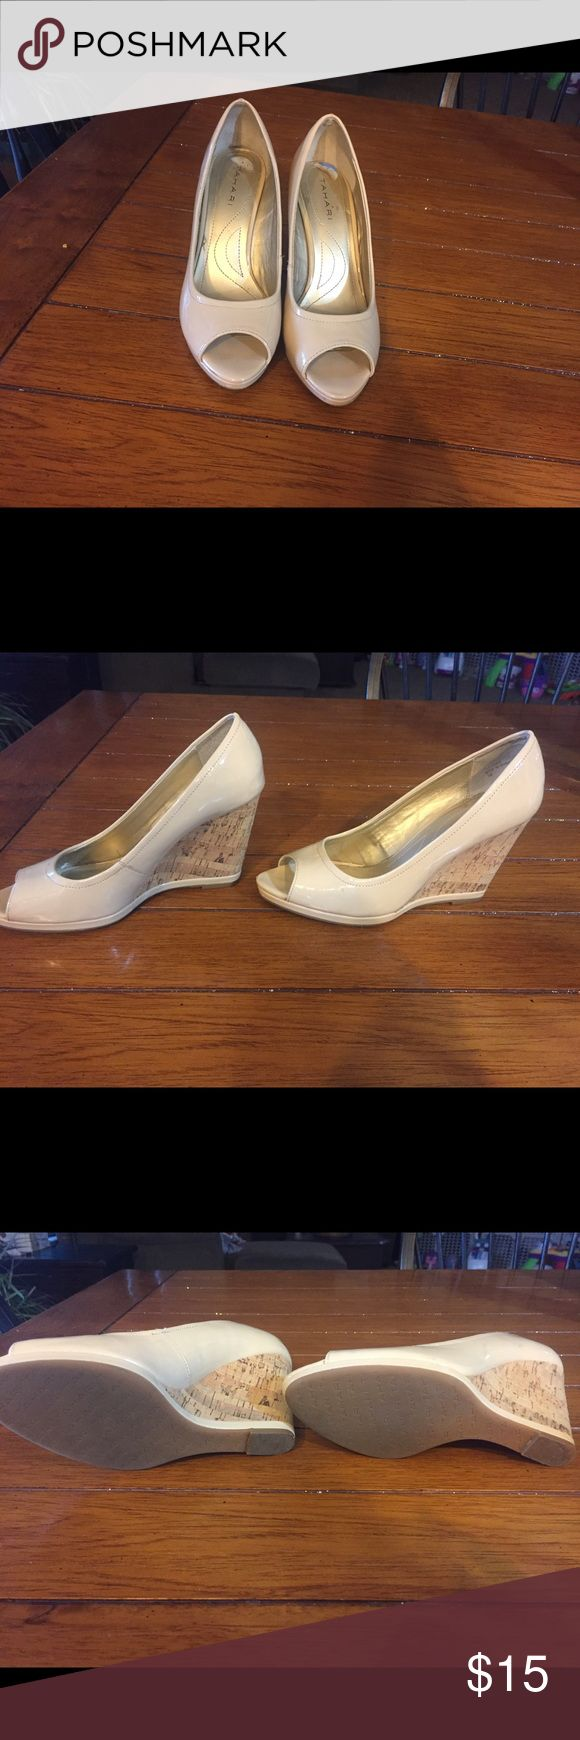 Cream wedge shoes Paten leather cream colored/nude wedges. Excellent condition! Brand is Tahari Tahari Shoes Wedges